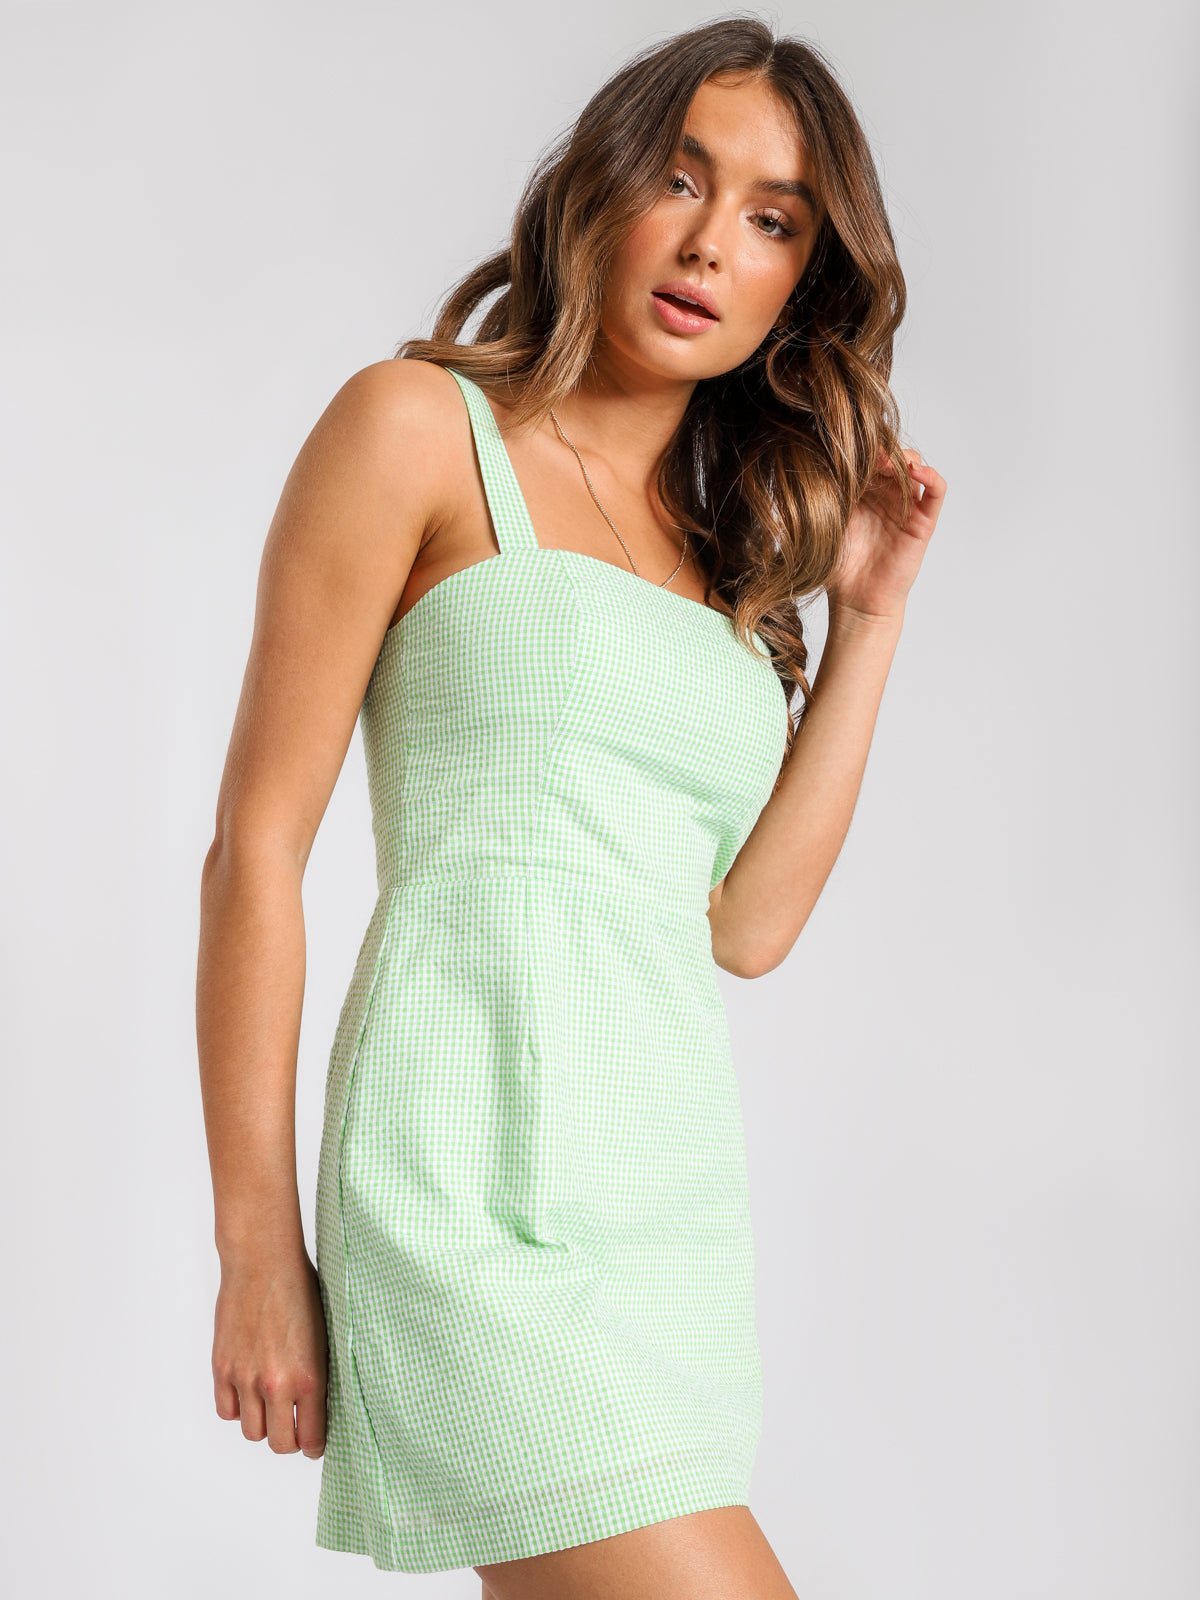 Solange Dress in Lime Green & White Check